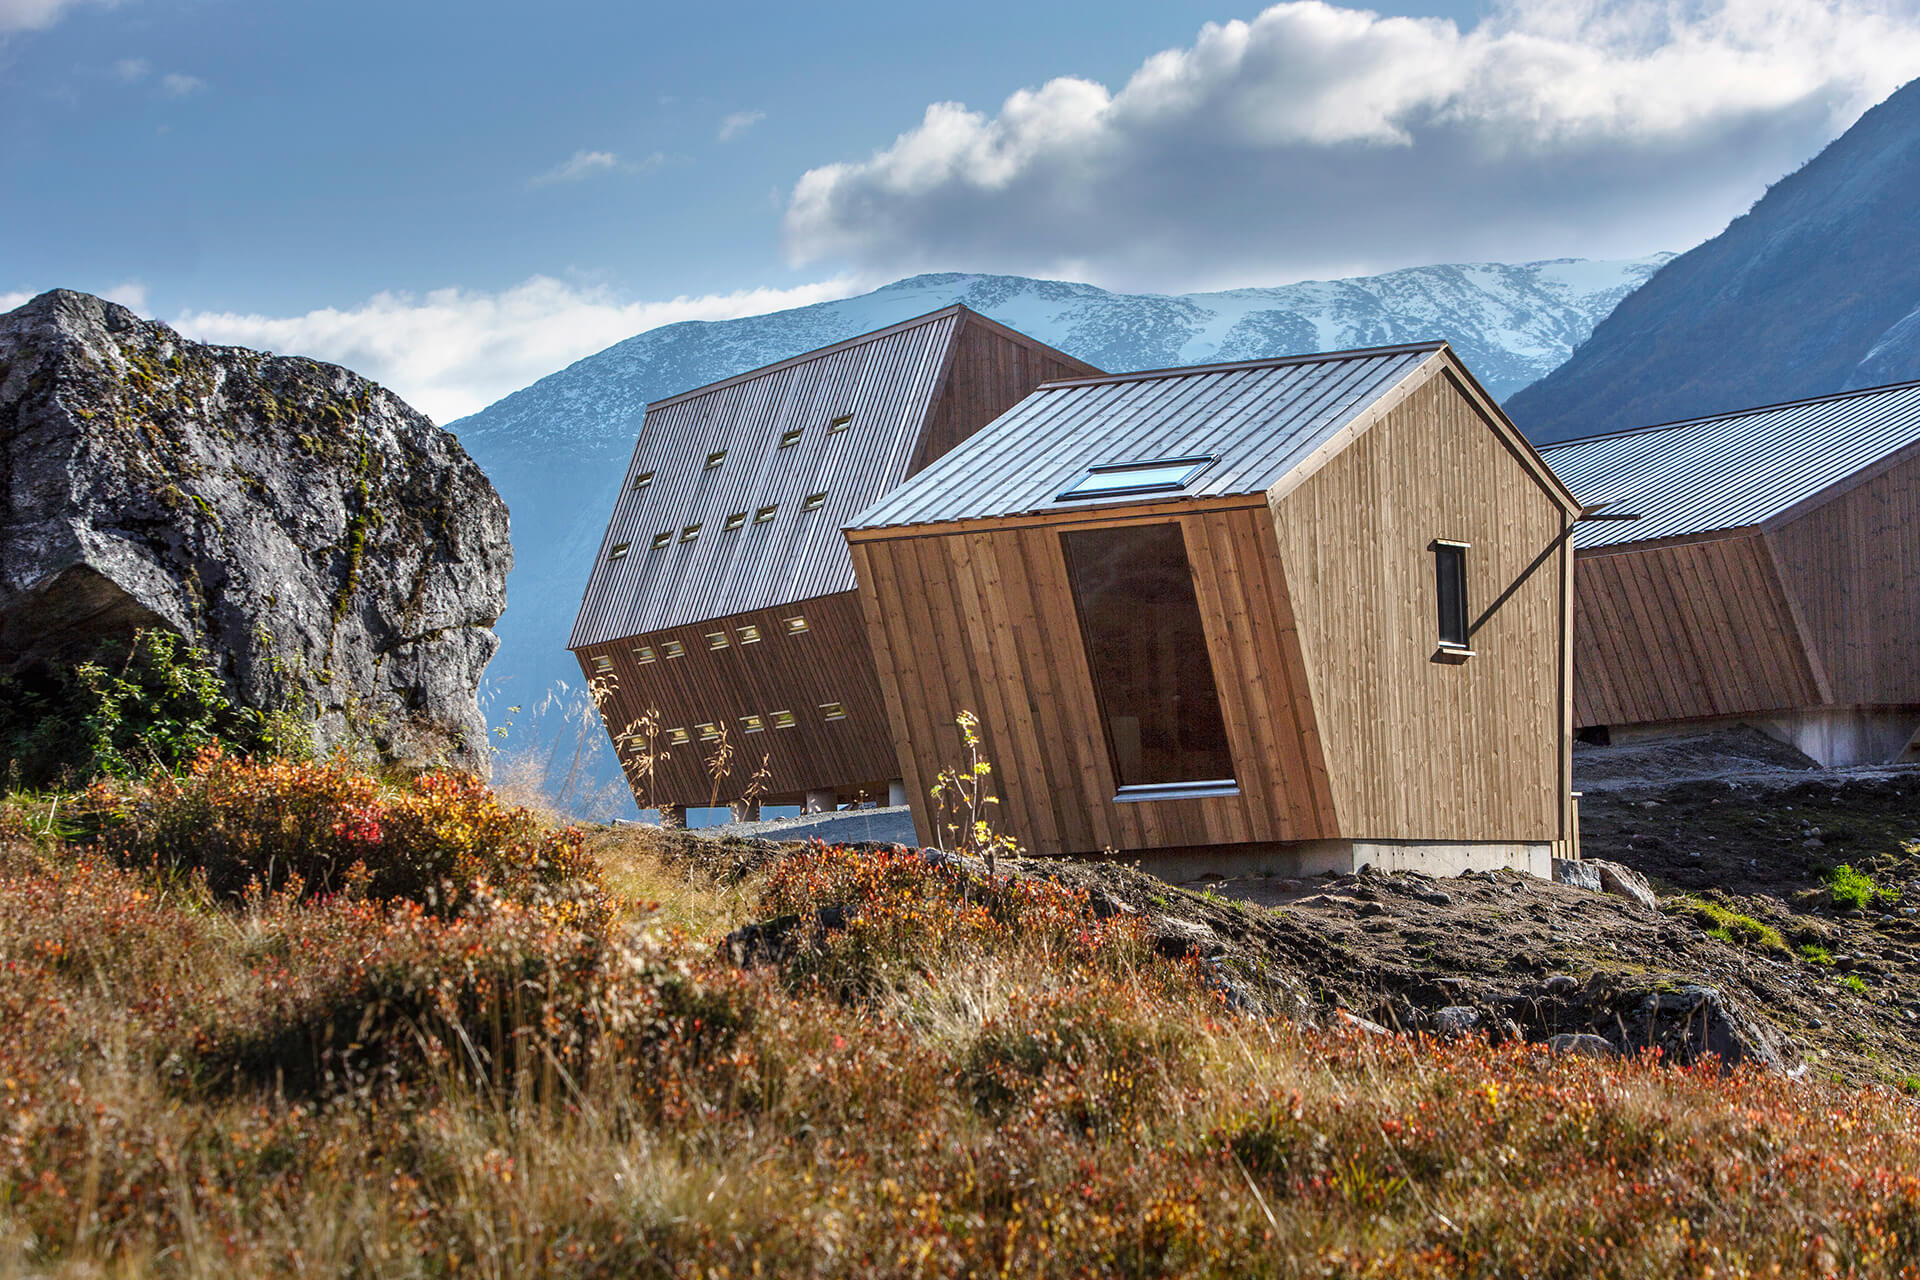 One of the smaller cabins | Tungestølen Hiking Cabin by Snøhetta | STIRworld